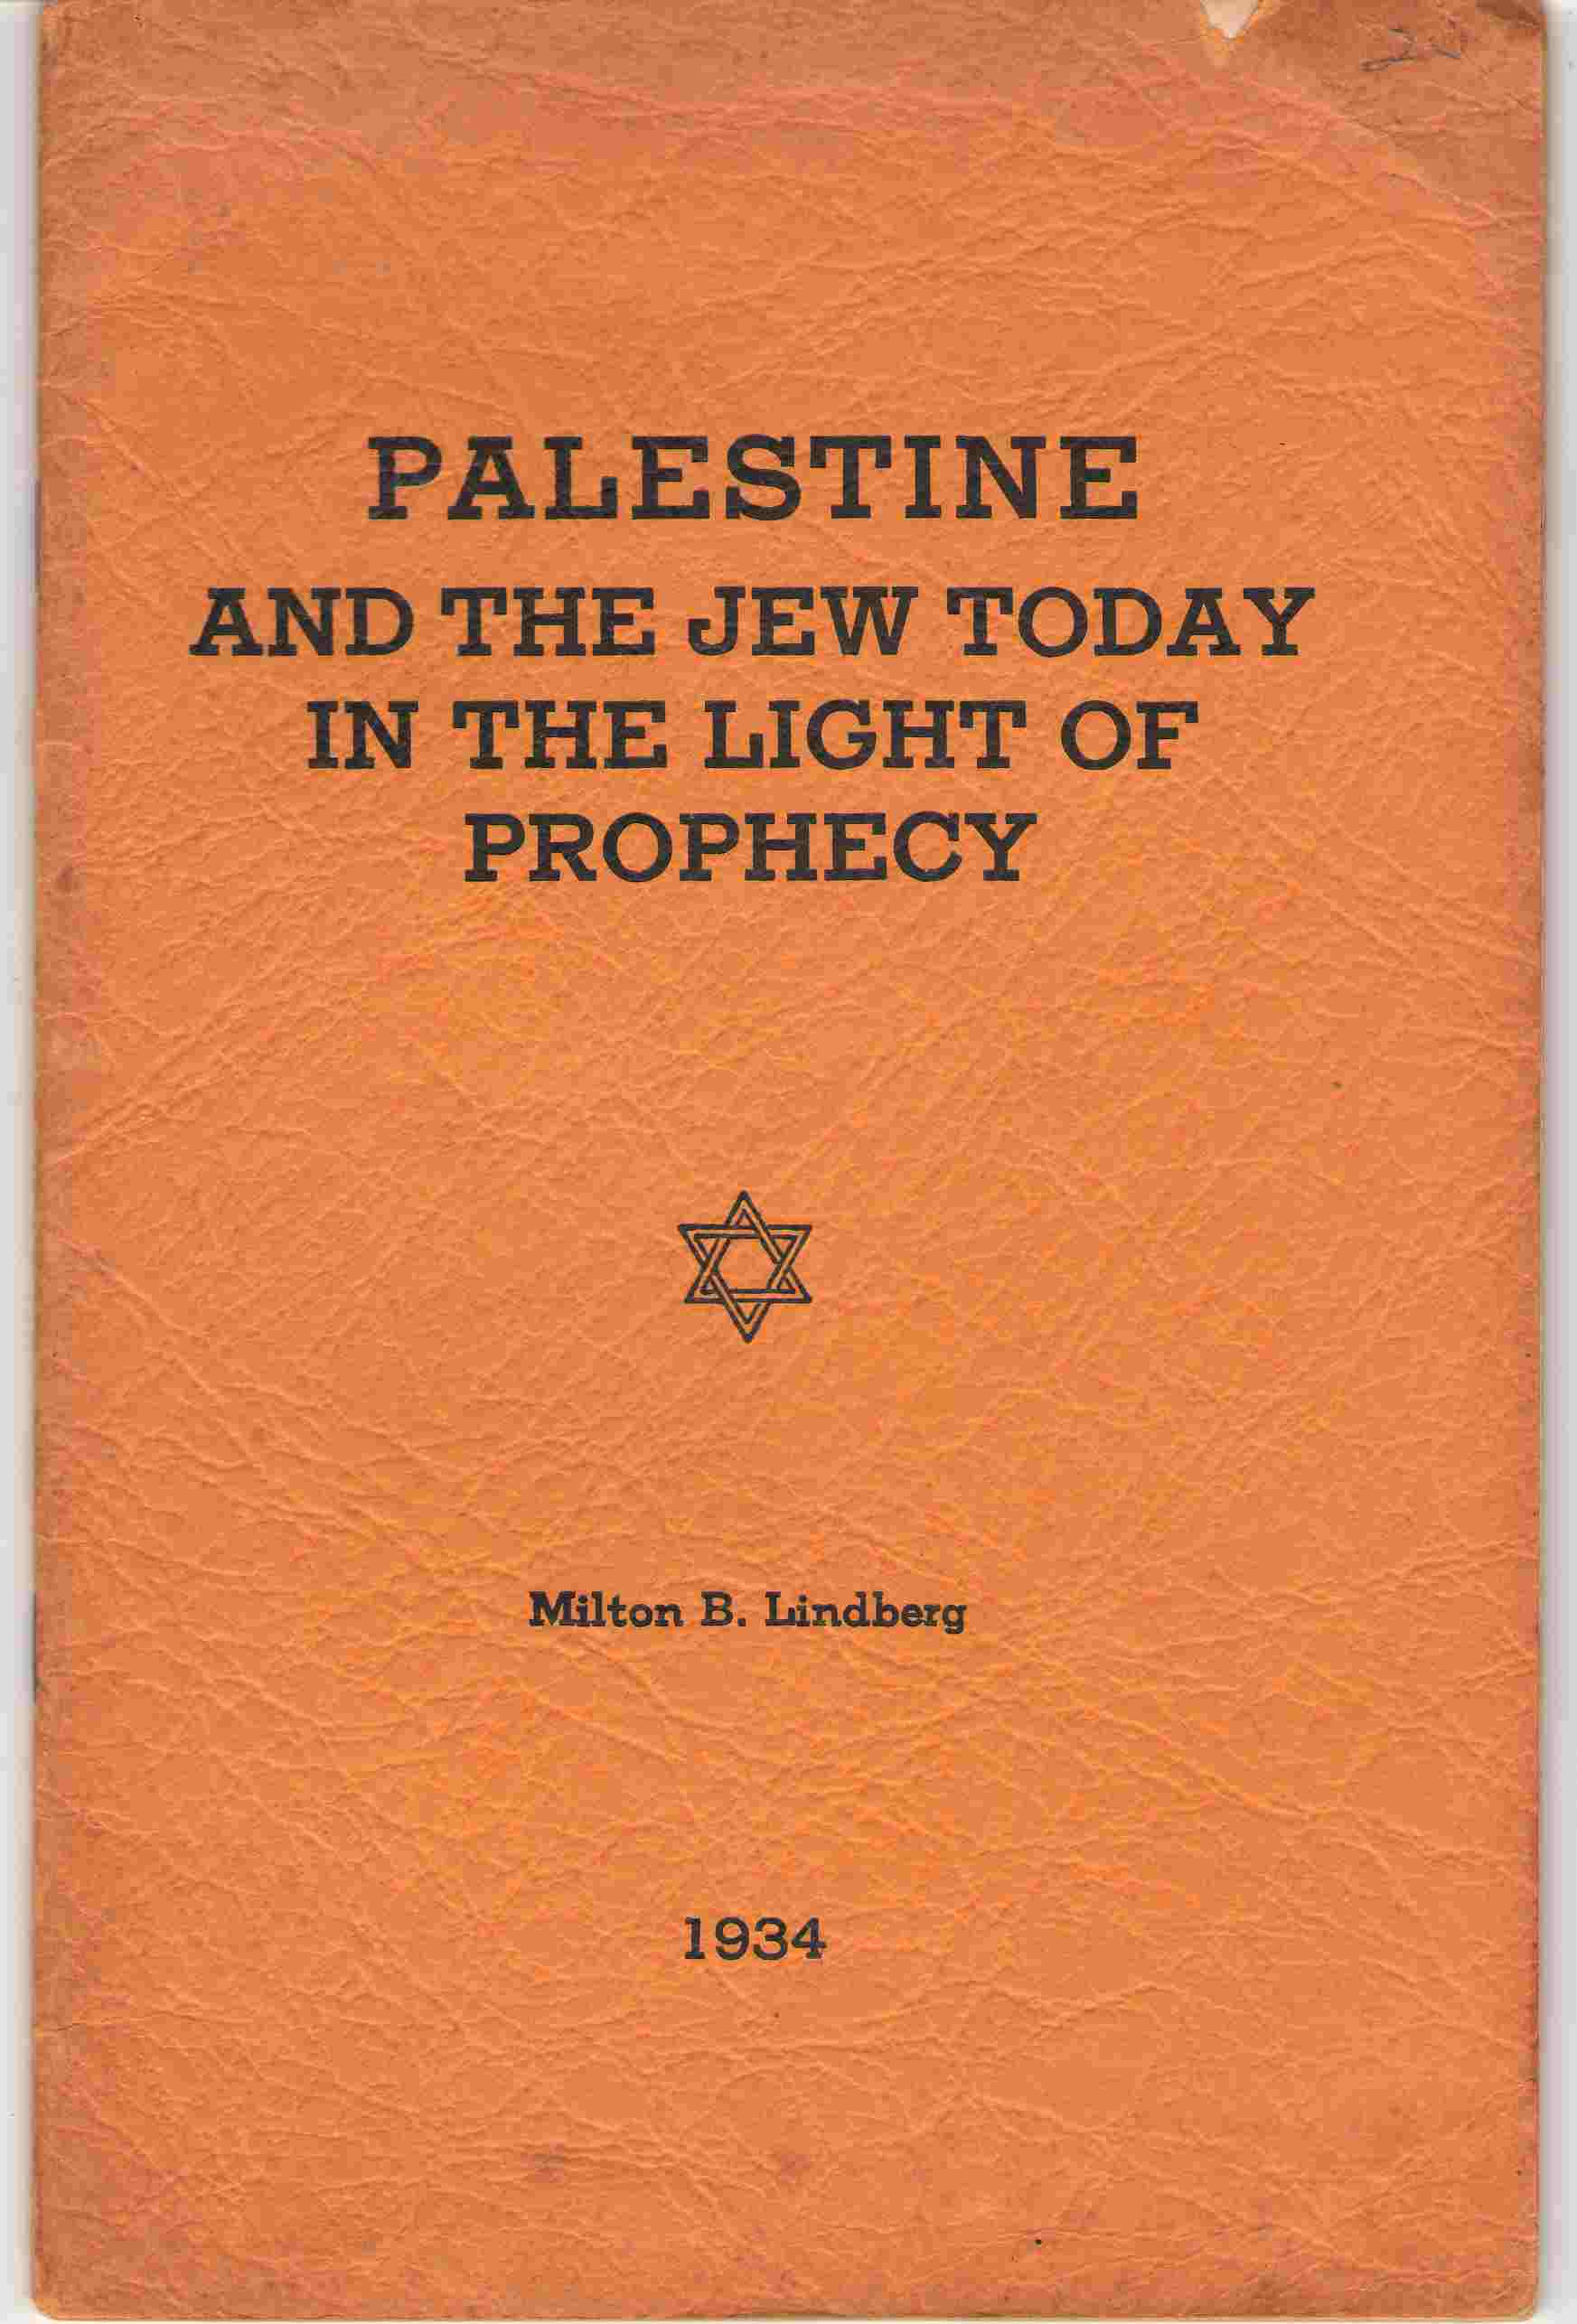 Palestine And The Jew Today In The Light Of Prophecy